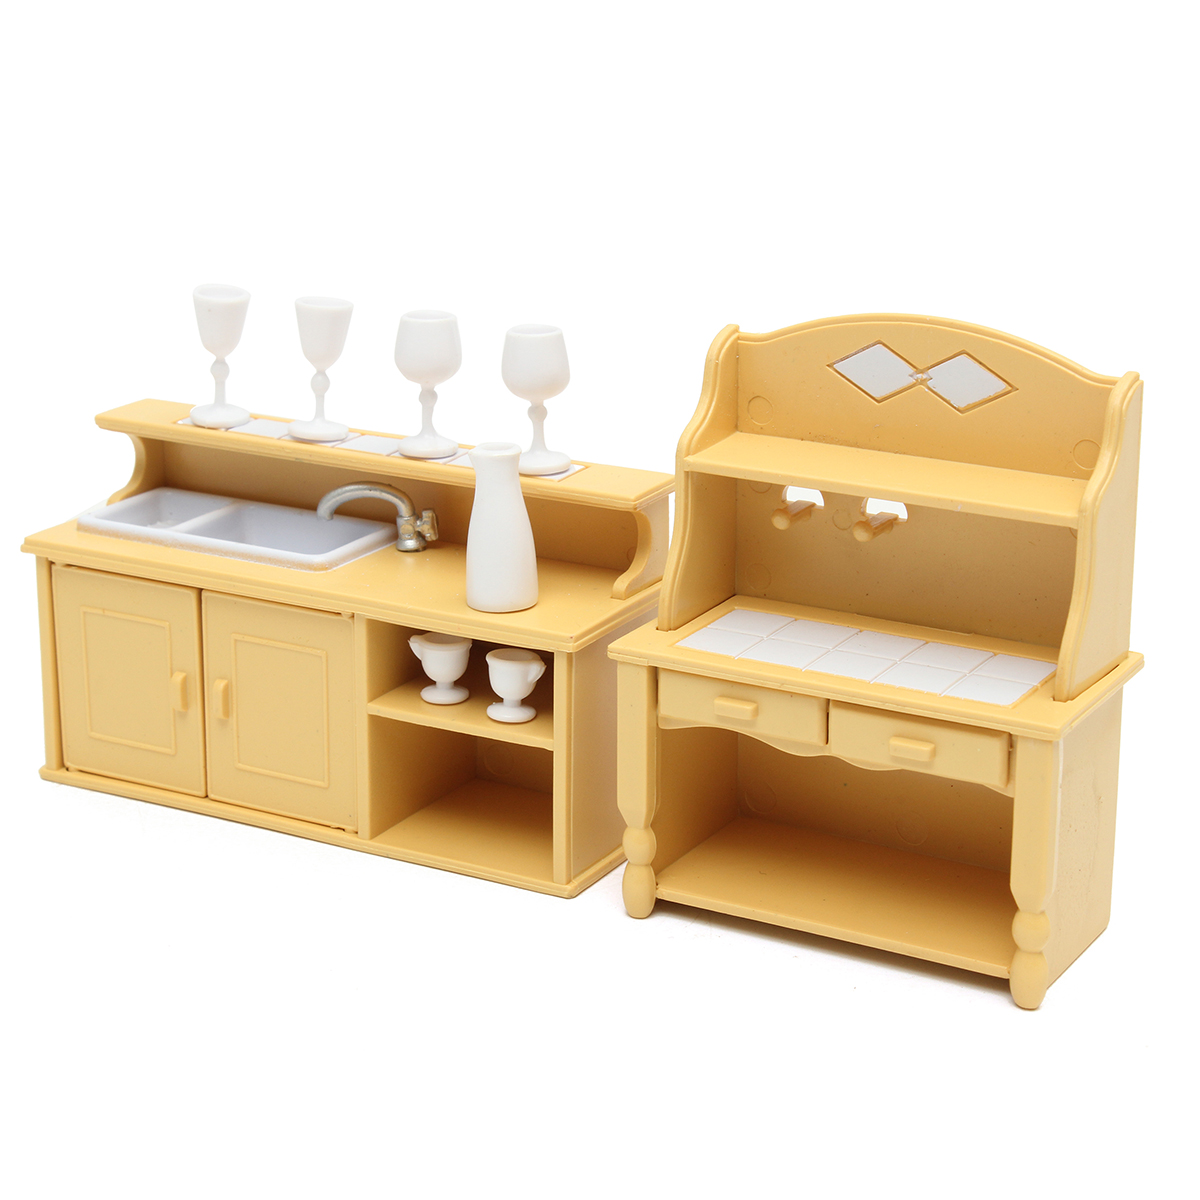 Room Furniture Kit Kitchen Cabinets Set for Sylvanian Families Calico Critters Dolls